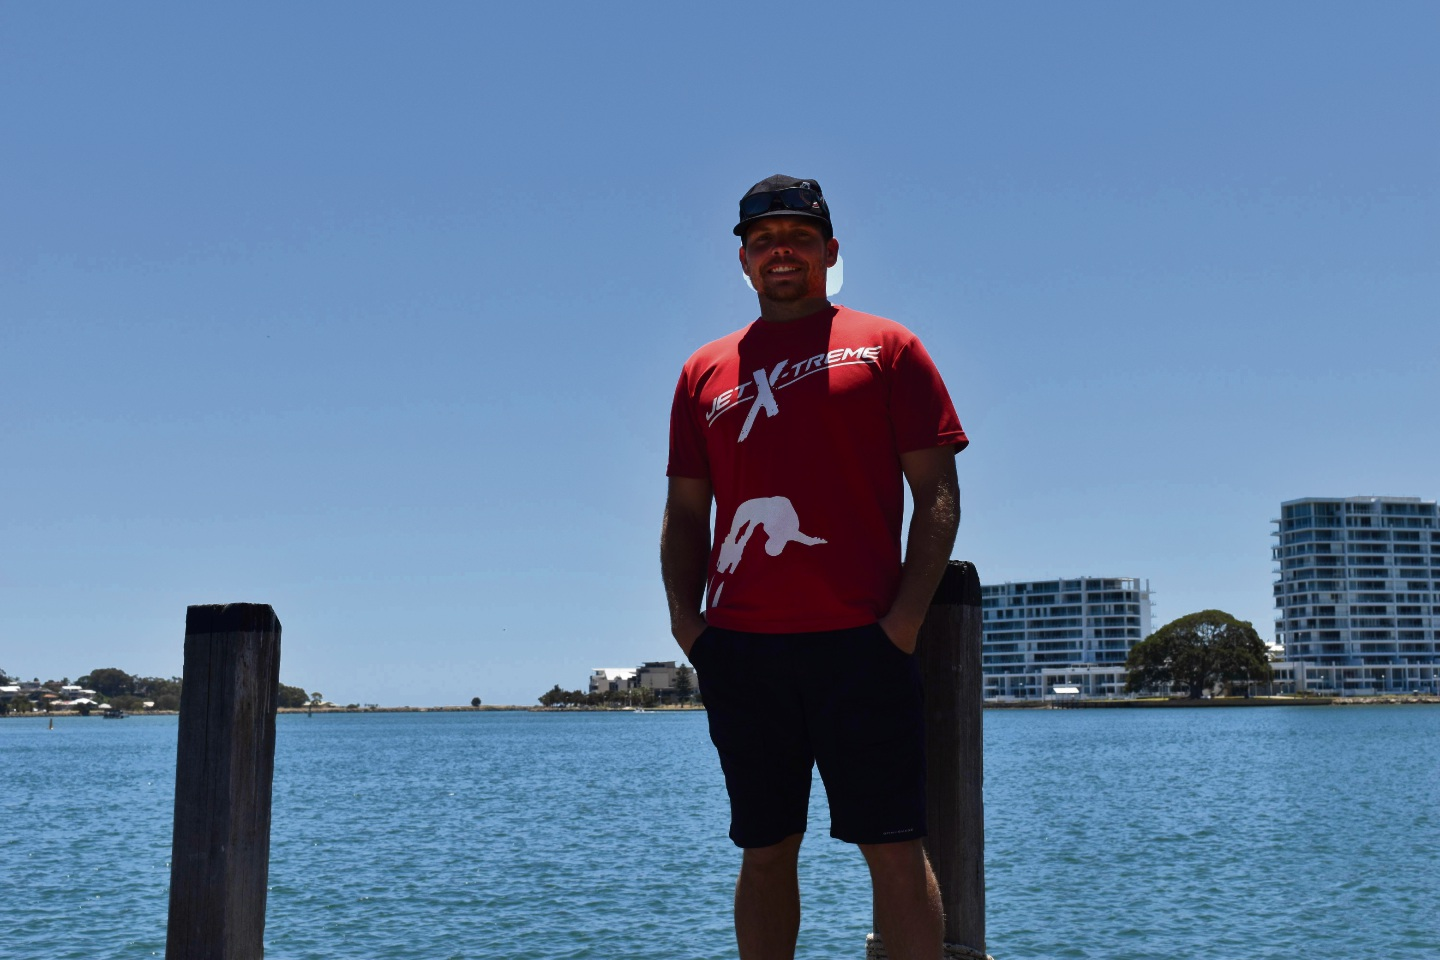 Florida native and world number two hydro-flight athlete Ben Merrell to perform at Crab Fest